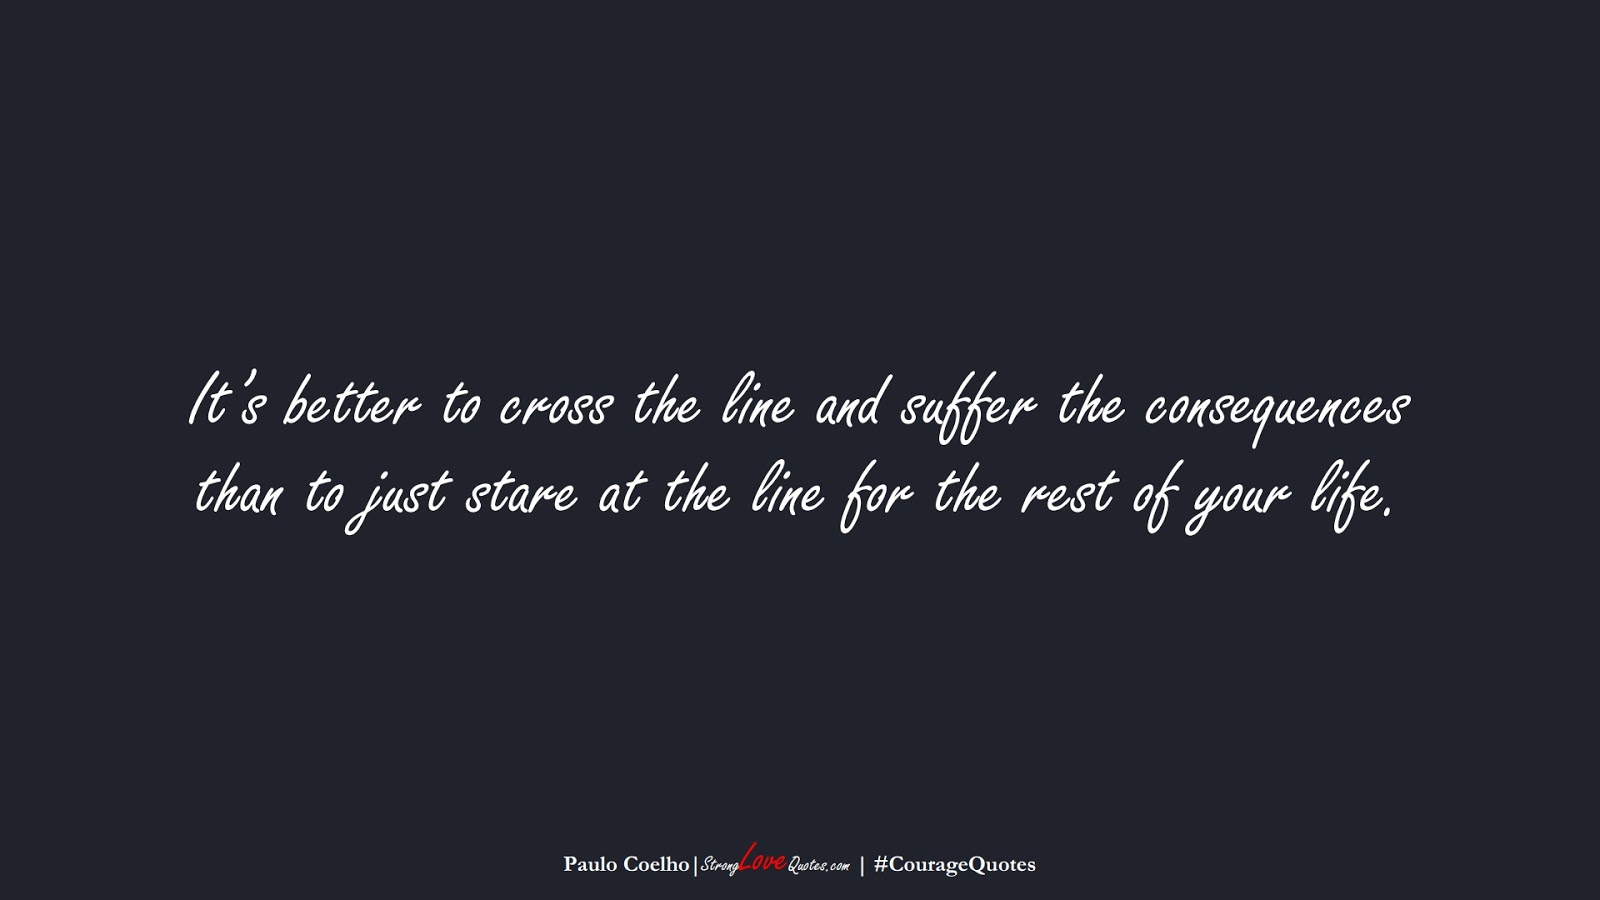 It's better to cross the line and suffer the consequences than to just stare at the line for the rest of your life. (Paulo Coelho);  #CourageQuotes